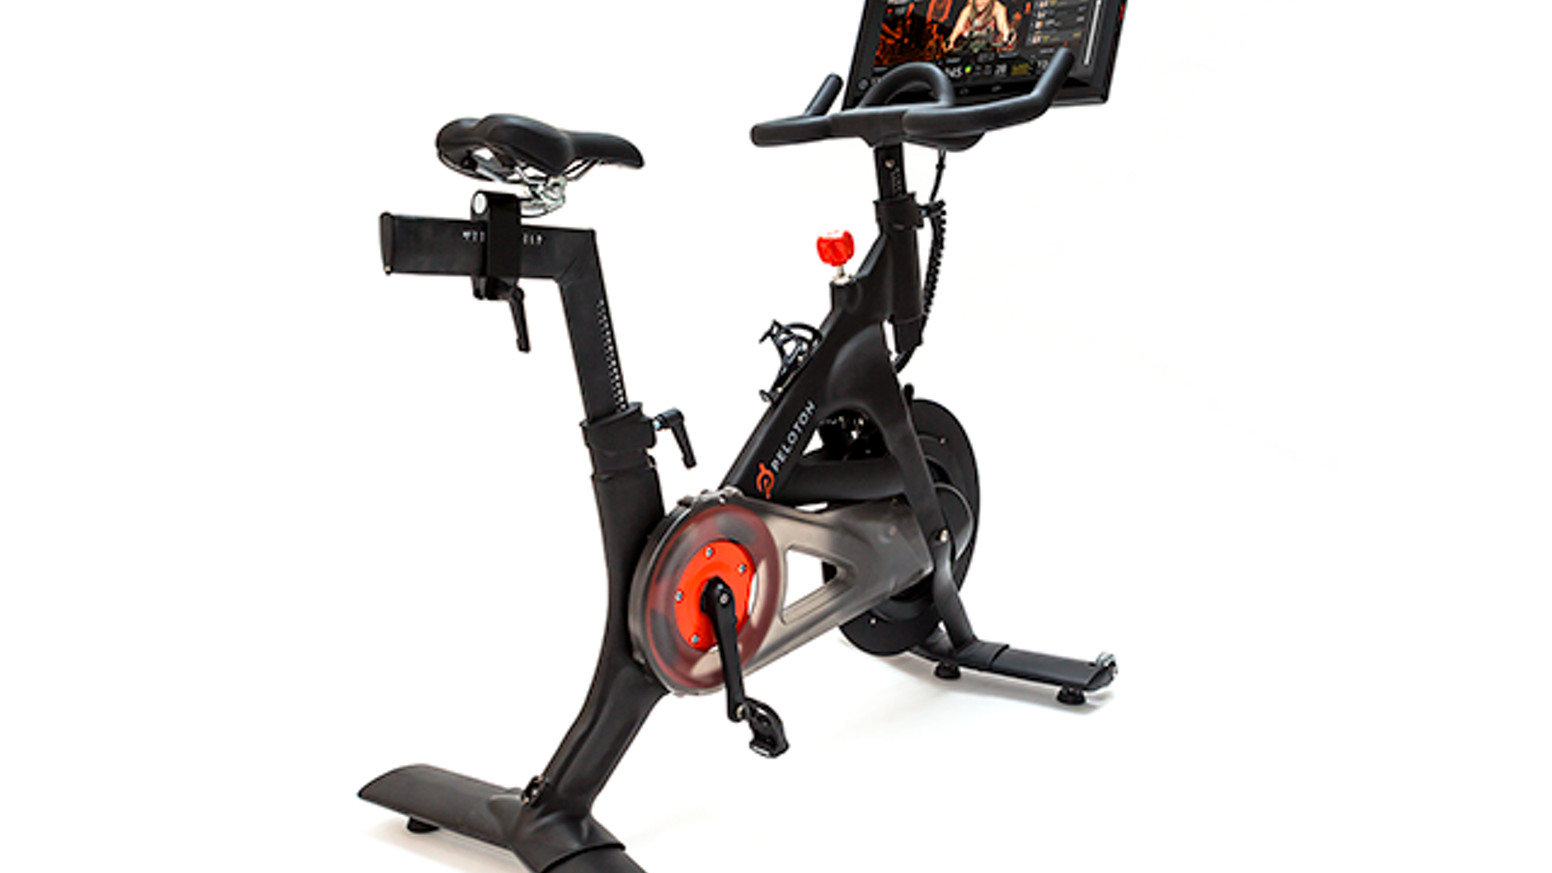 DIY Peloton Bike Setup for 75% Less than the Cost of a Peloton Bike